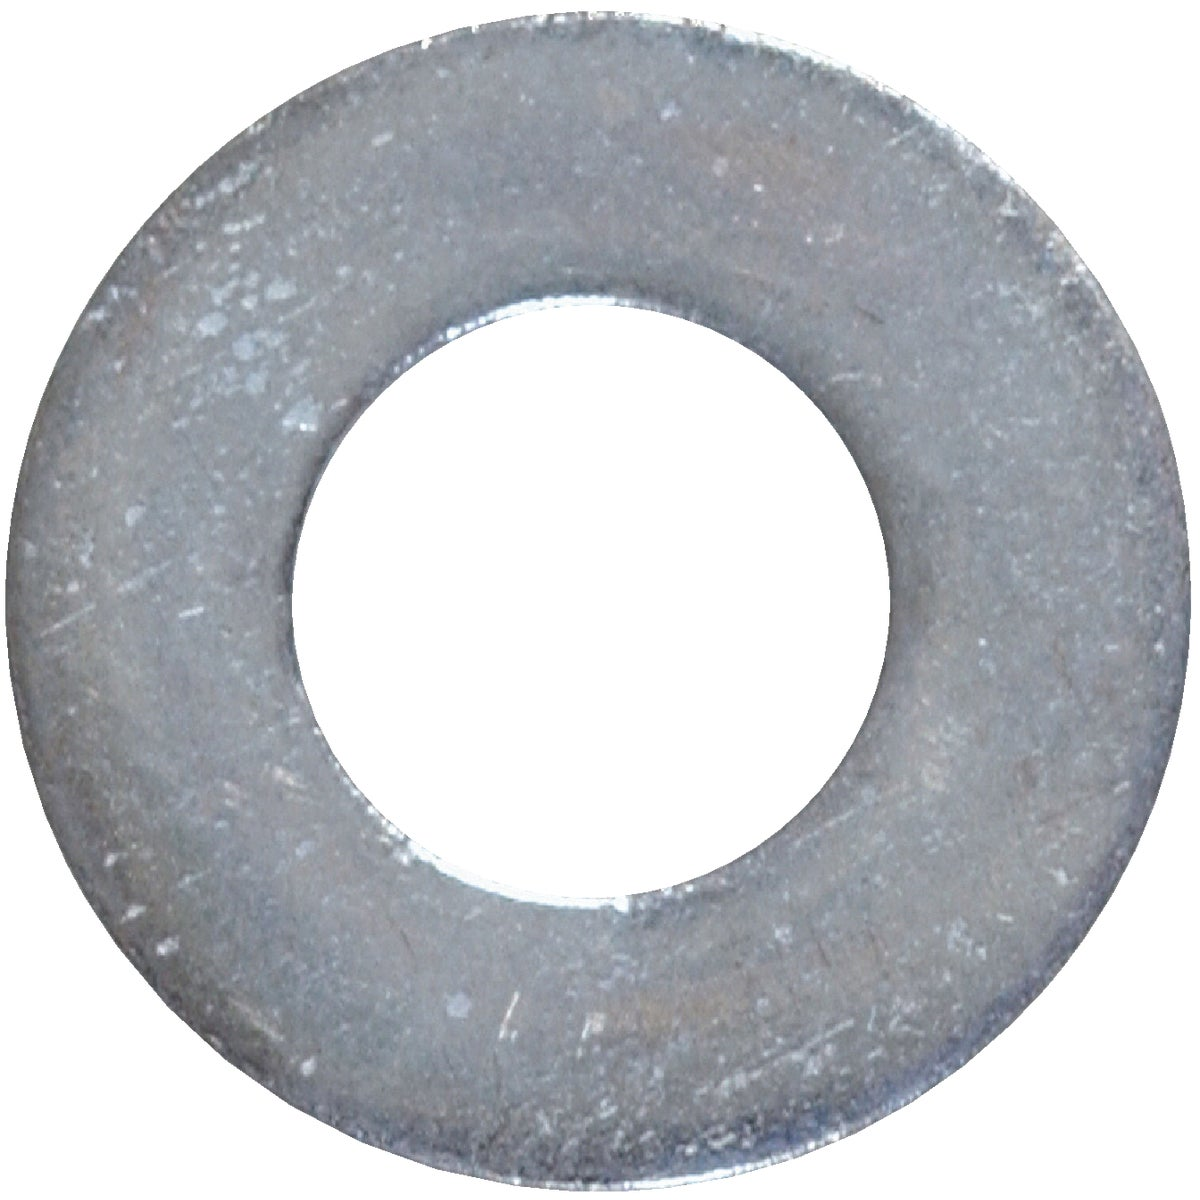 "5LB 3/8"" USS FLT WASHER - 811009 by Hillman Fastener"